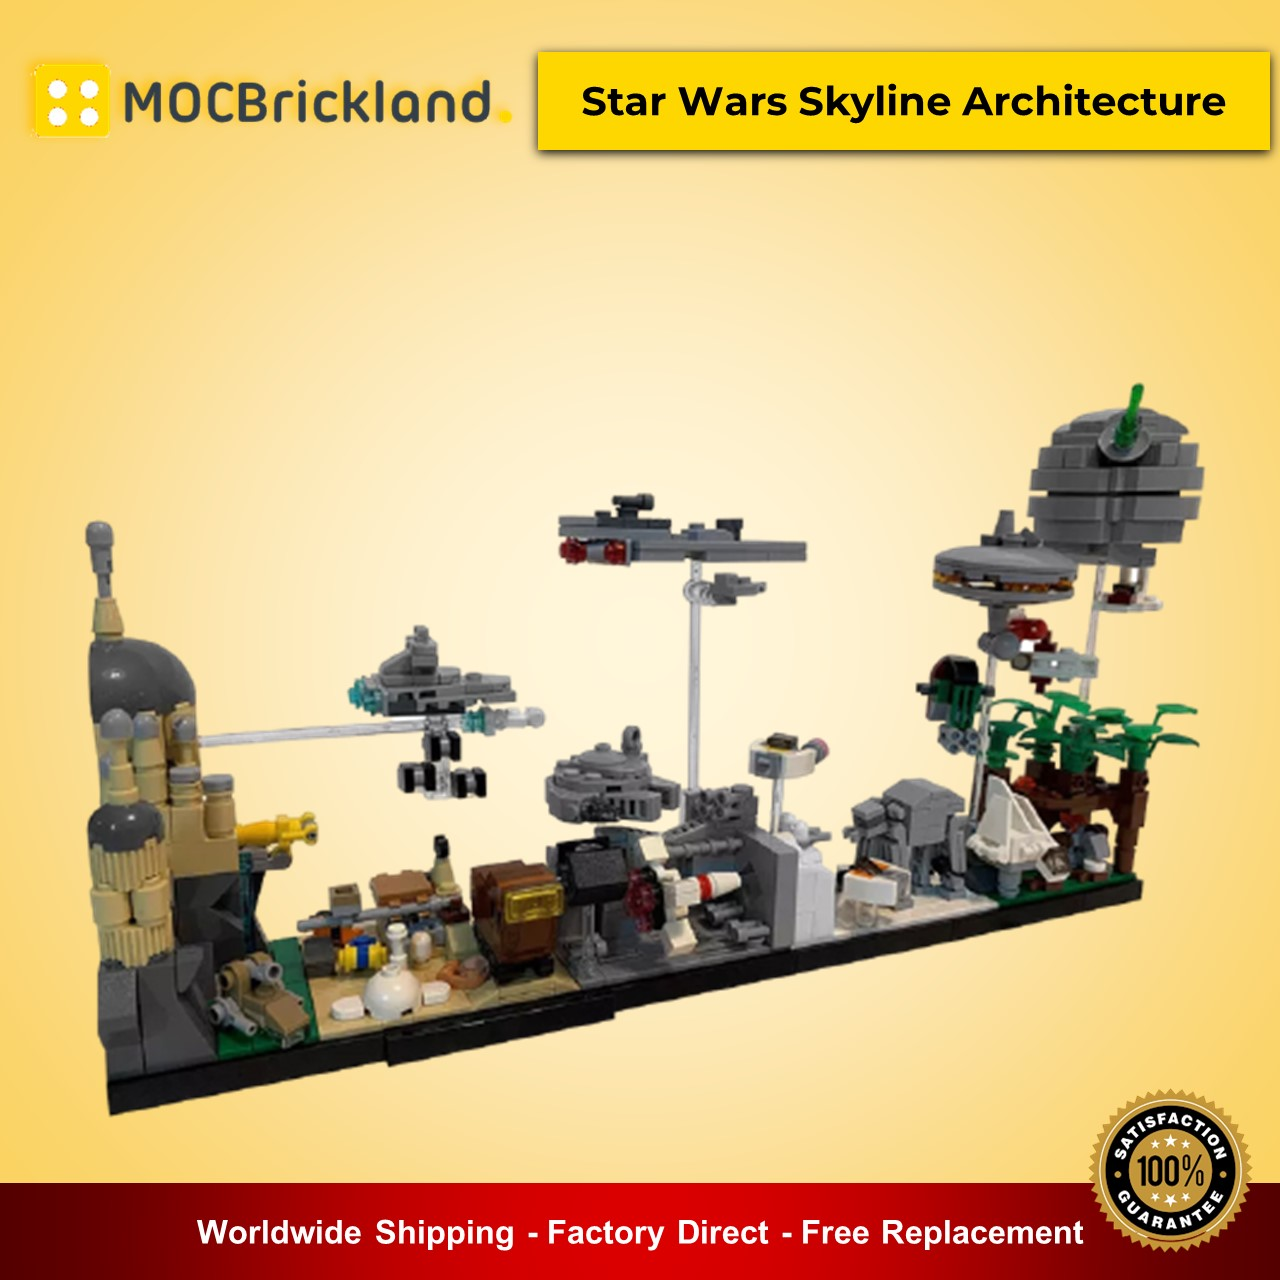 MOC-19493 Star Wars Skyline Architecture Star Wars Designed By MOMAtteo79 With 788 Pieces